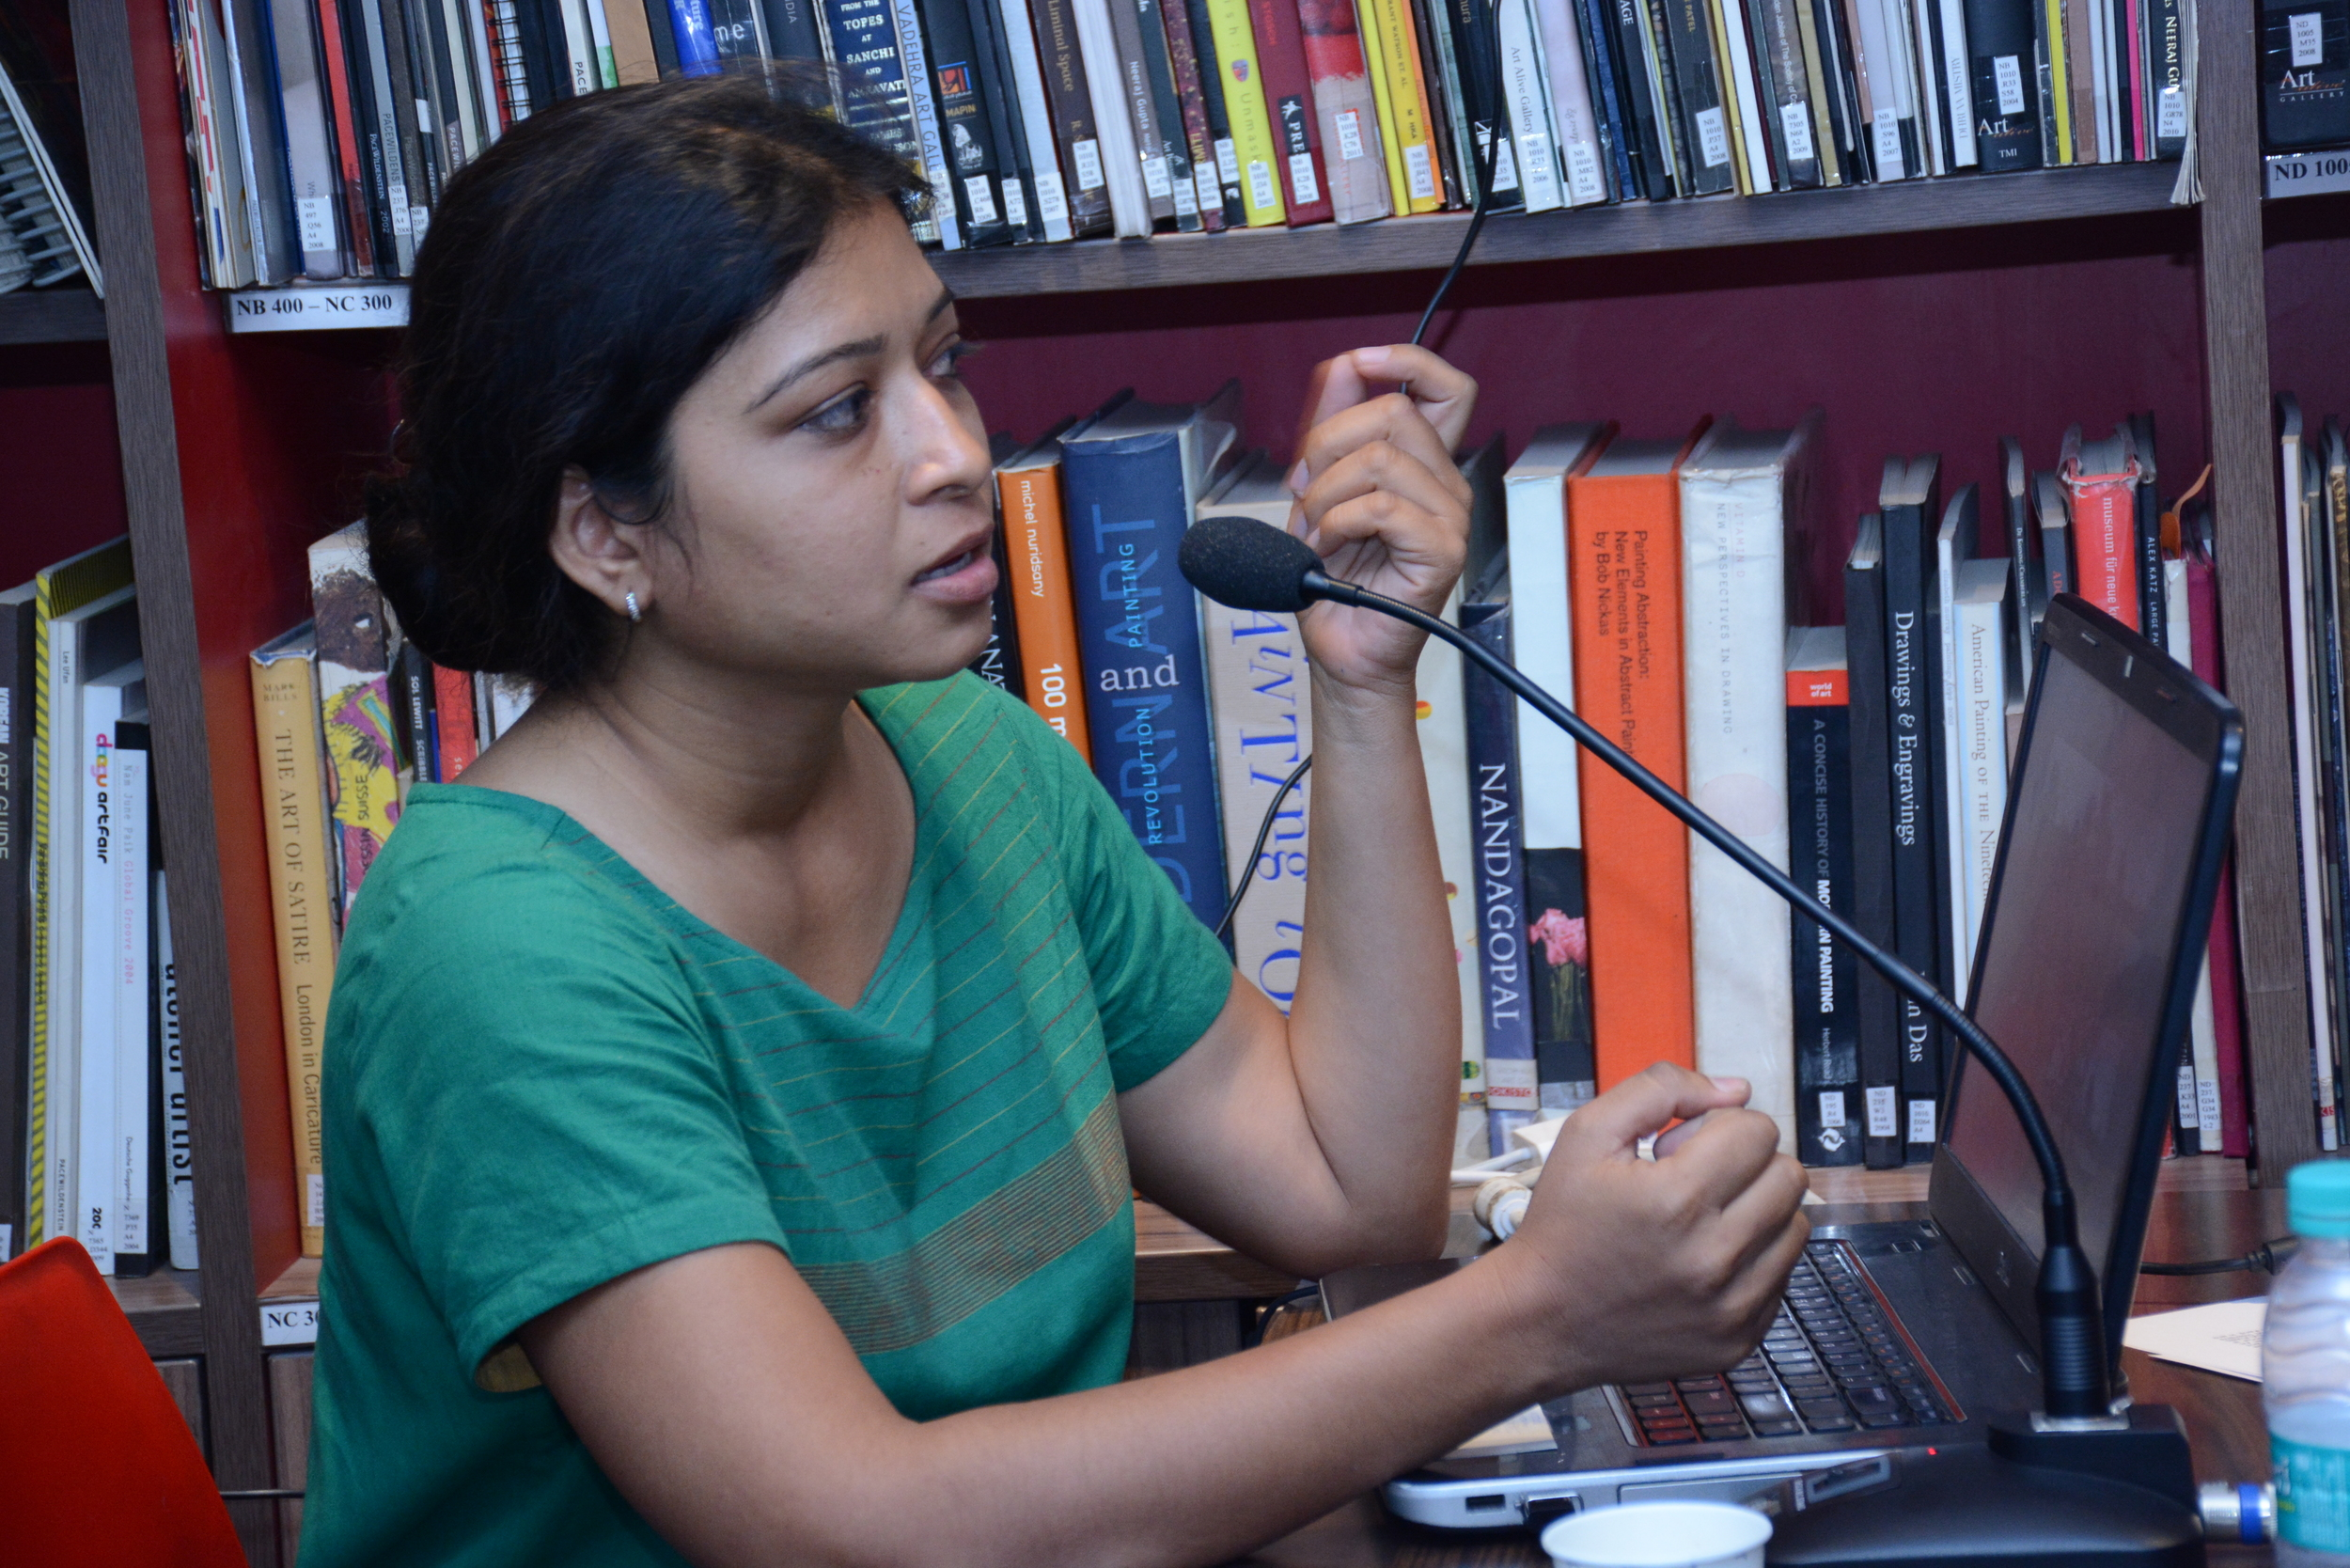 Shweta Bhattad, the PAG 2015 grantee, speaks on her new project Gram Dhara Chitra Utsav